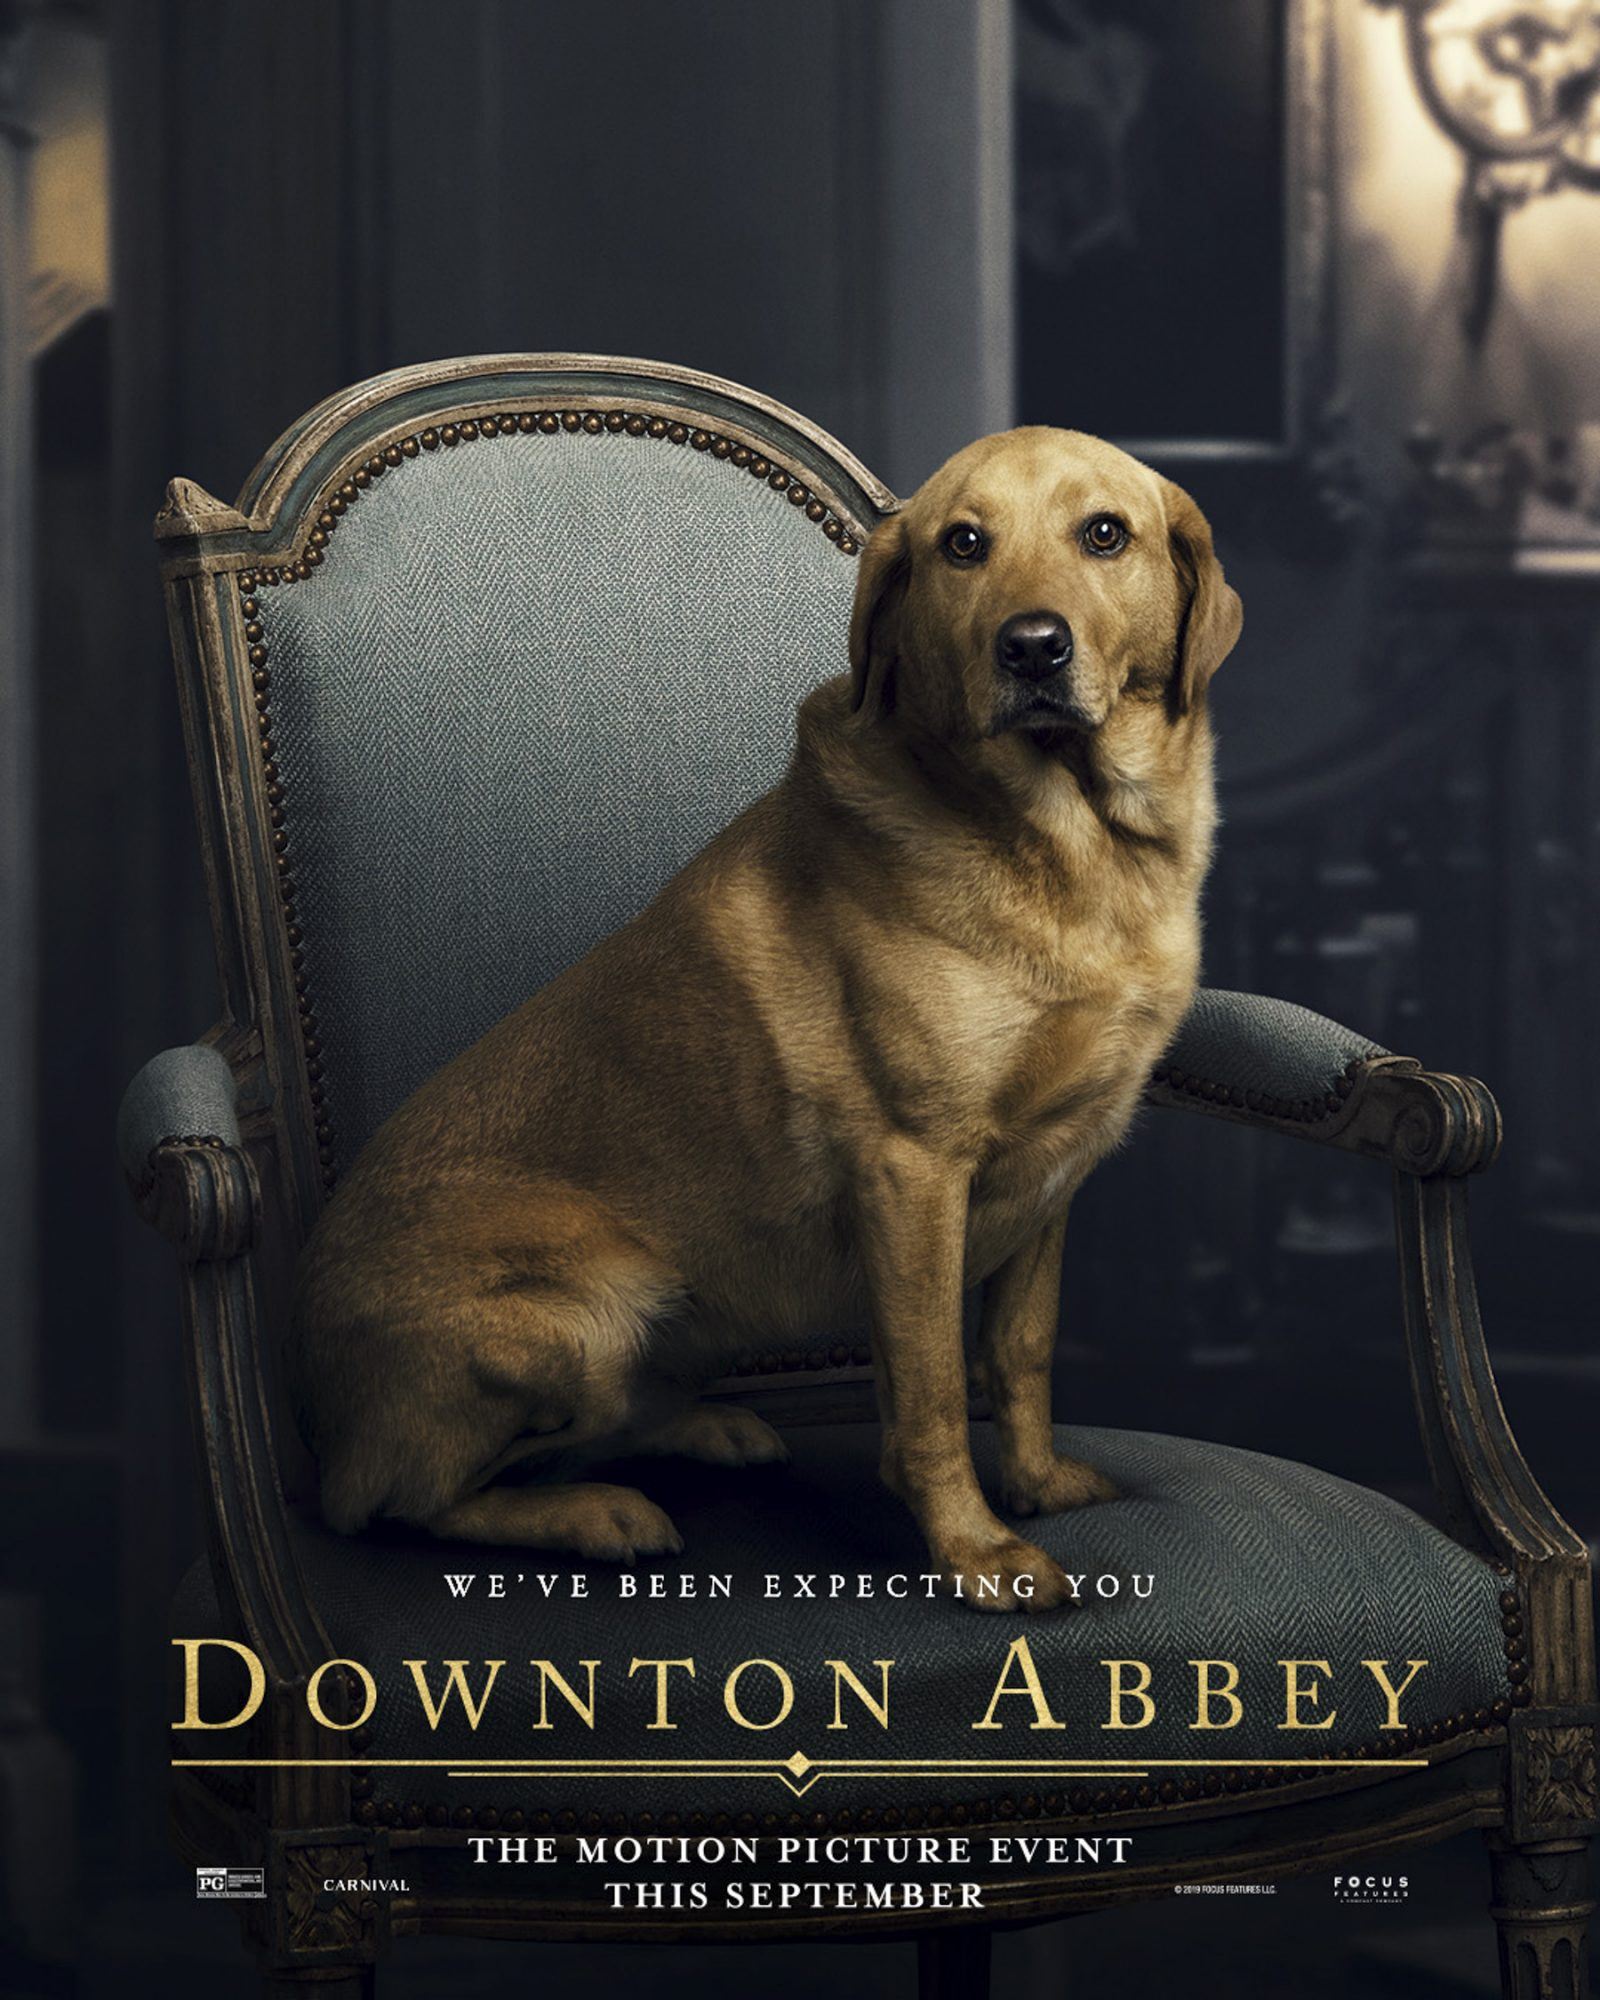 Downton Abbey movie poster CR: Focus Features